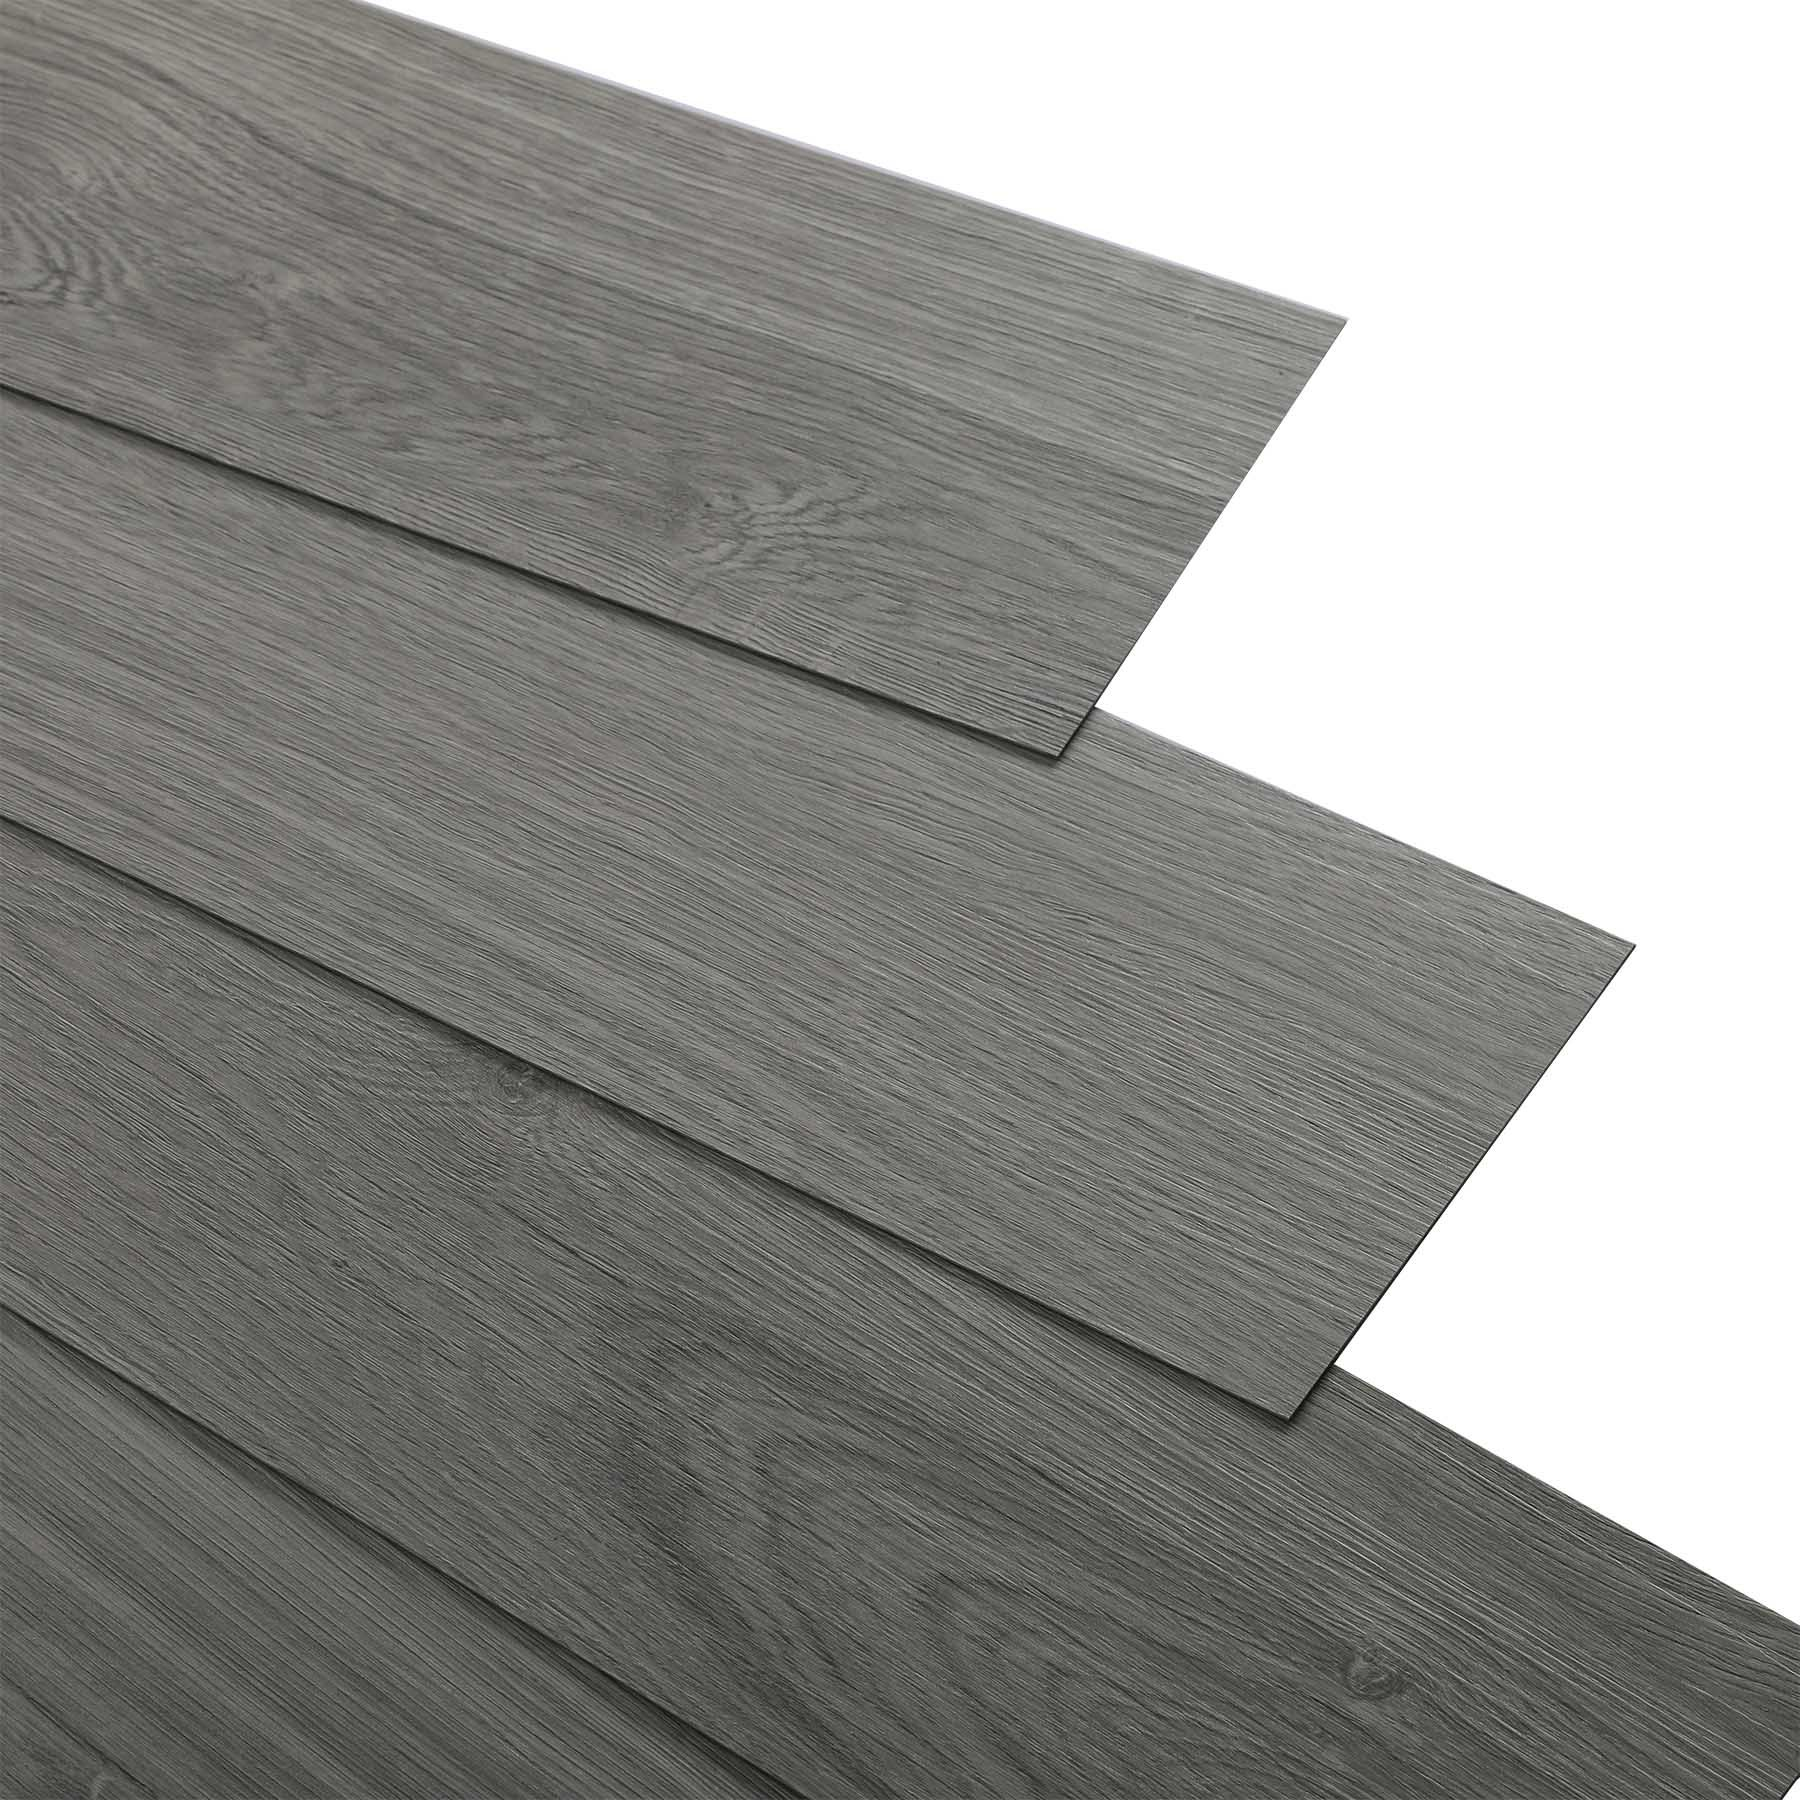 adhesive n decoration tiles hardwood sale ideas floors stick self tile peel wood gallery vinyl floor planks